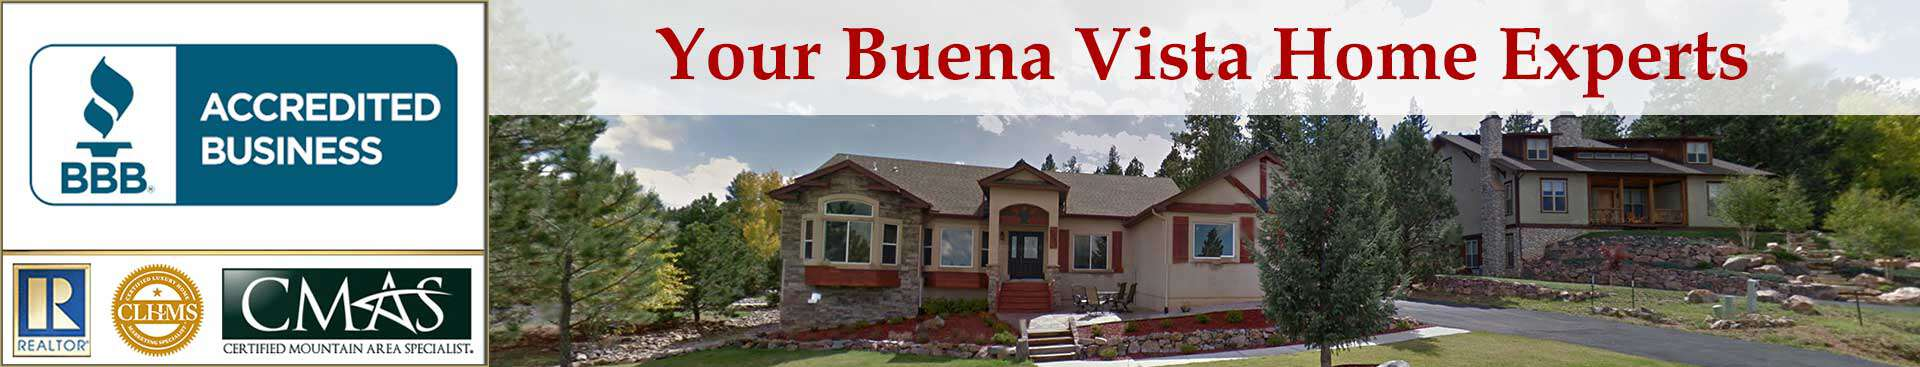 Buena Vista Accreditations Banner